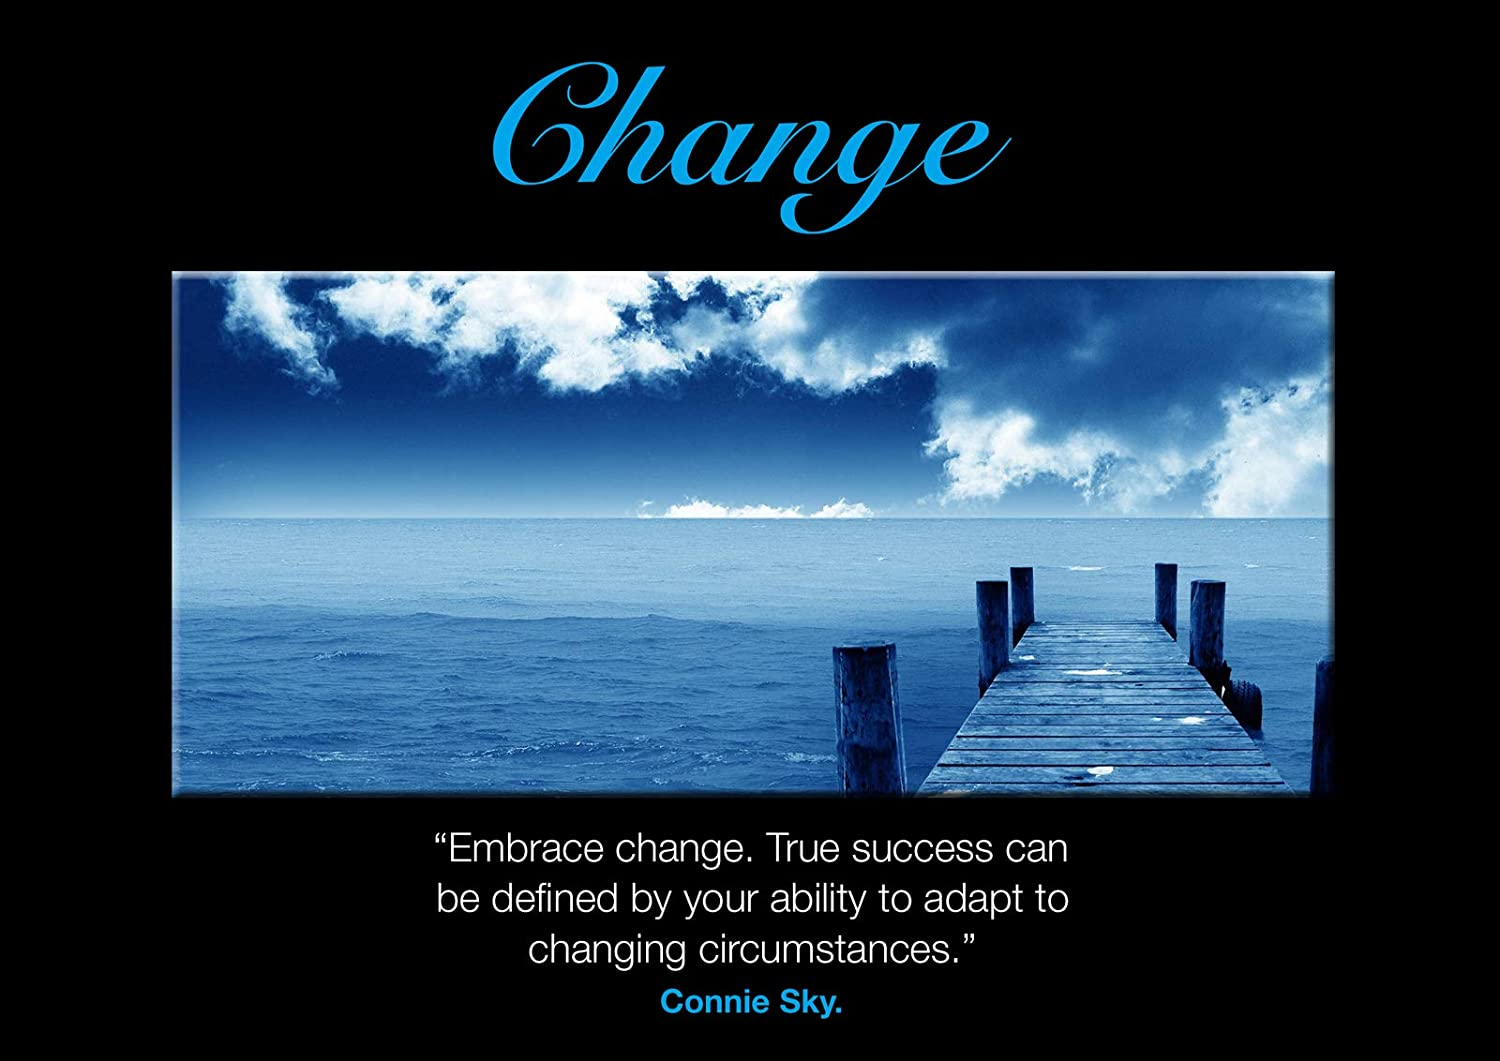 Motivational 18 Inspiration Motto Change Connie Sky Quote Poster Picture Print